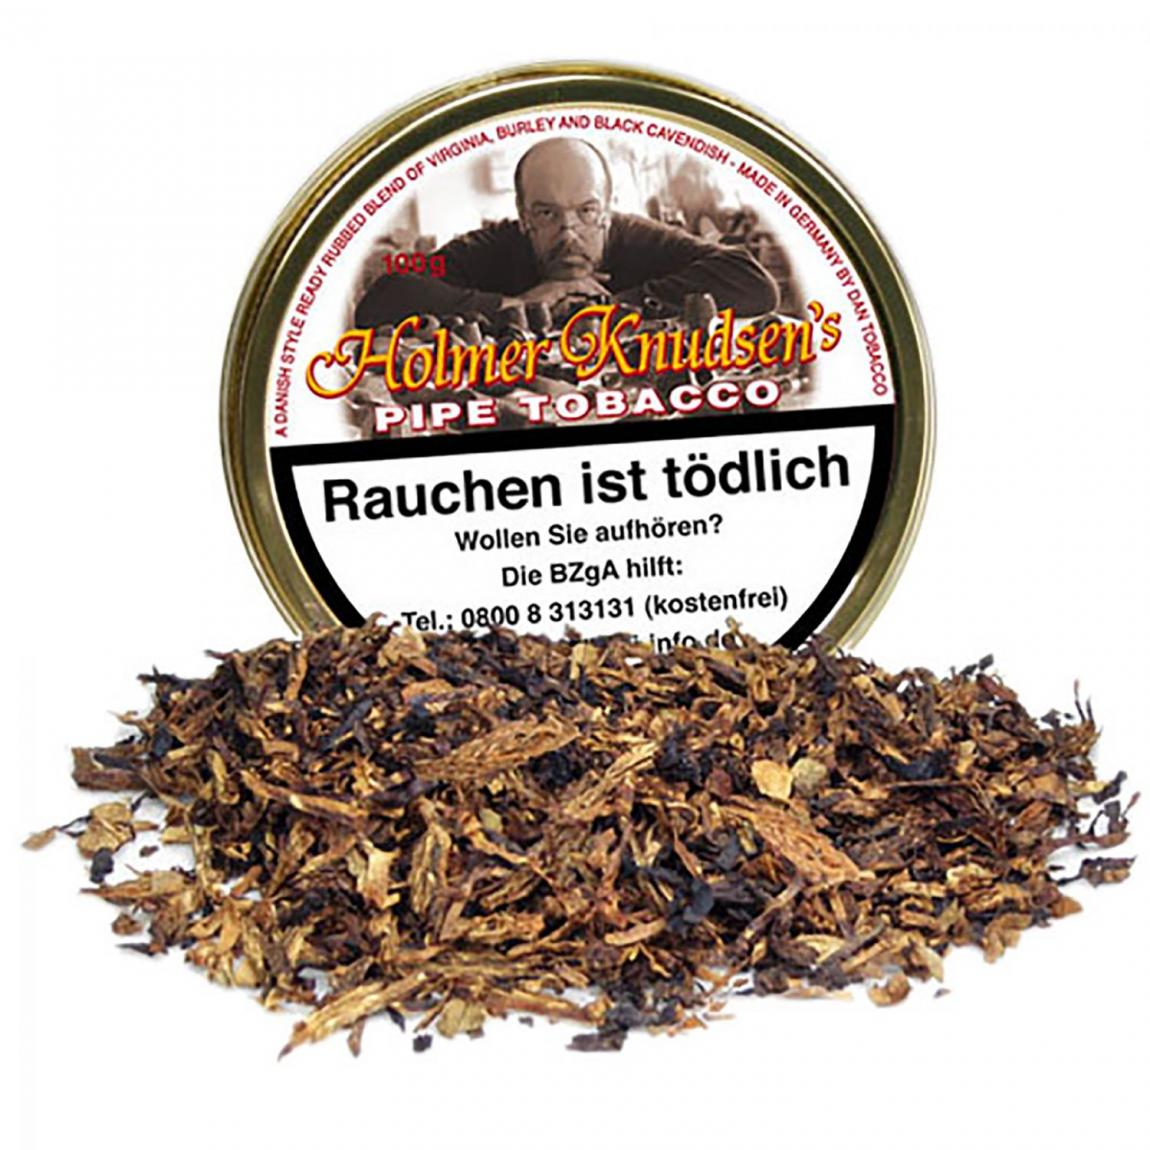 Holmer Knudsen's Pipe Tobacco - Ready Rubbed mit cremiger Süße